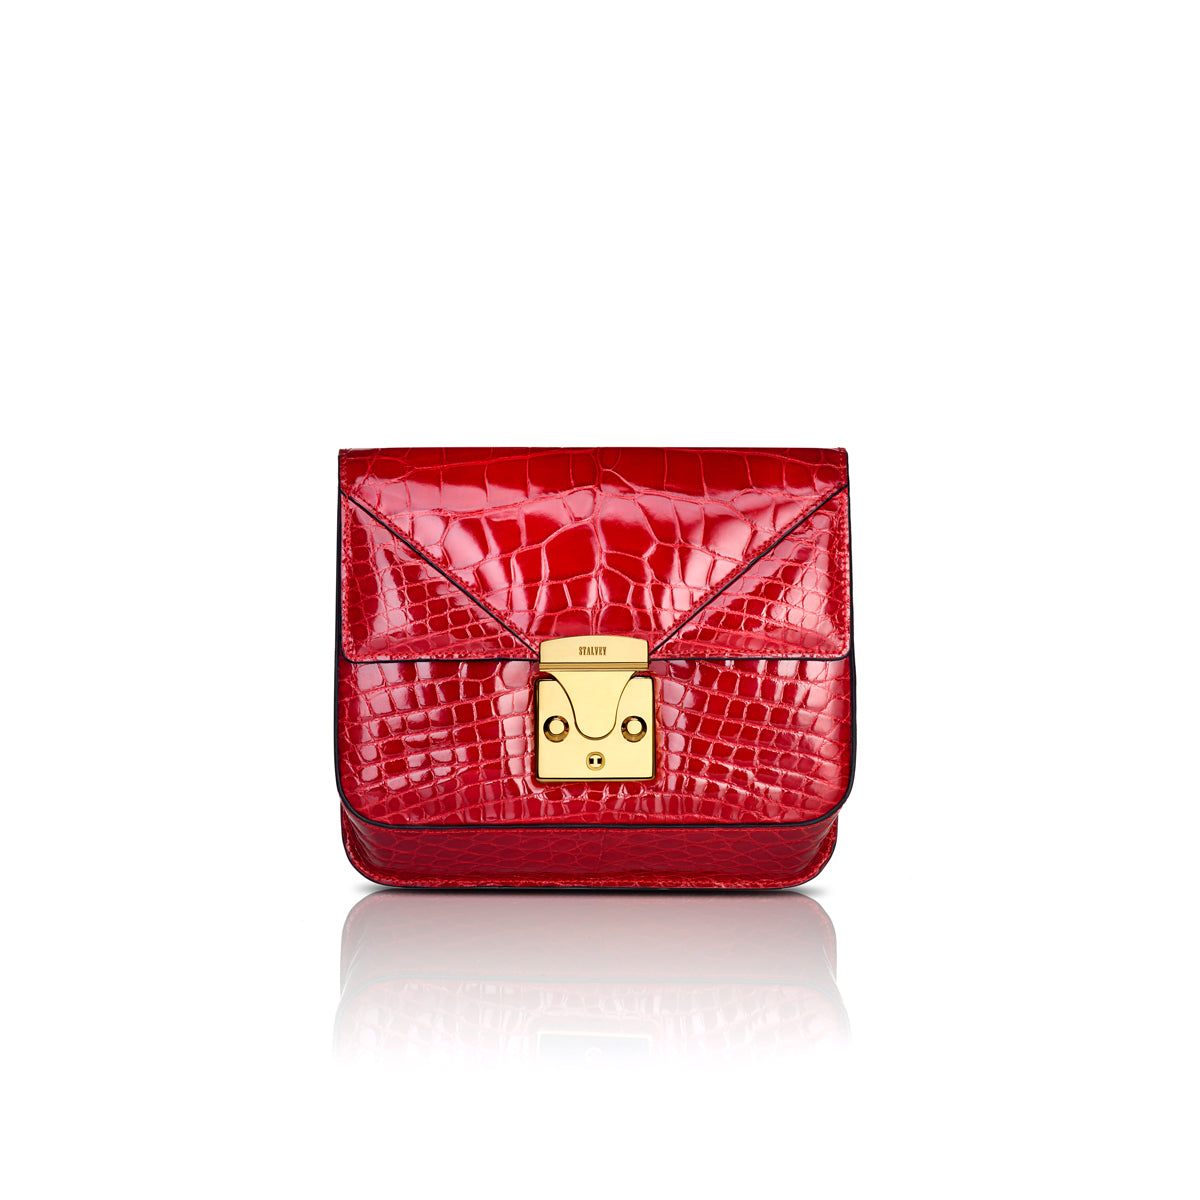 Belt Bag 2.0 - Cerise Alligator